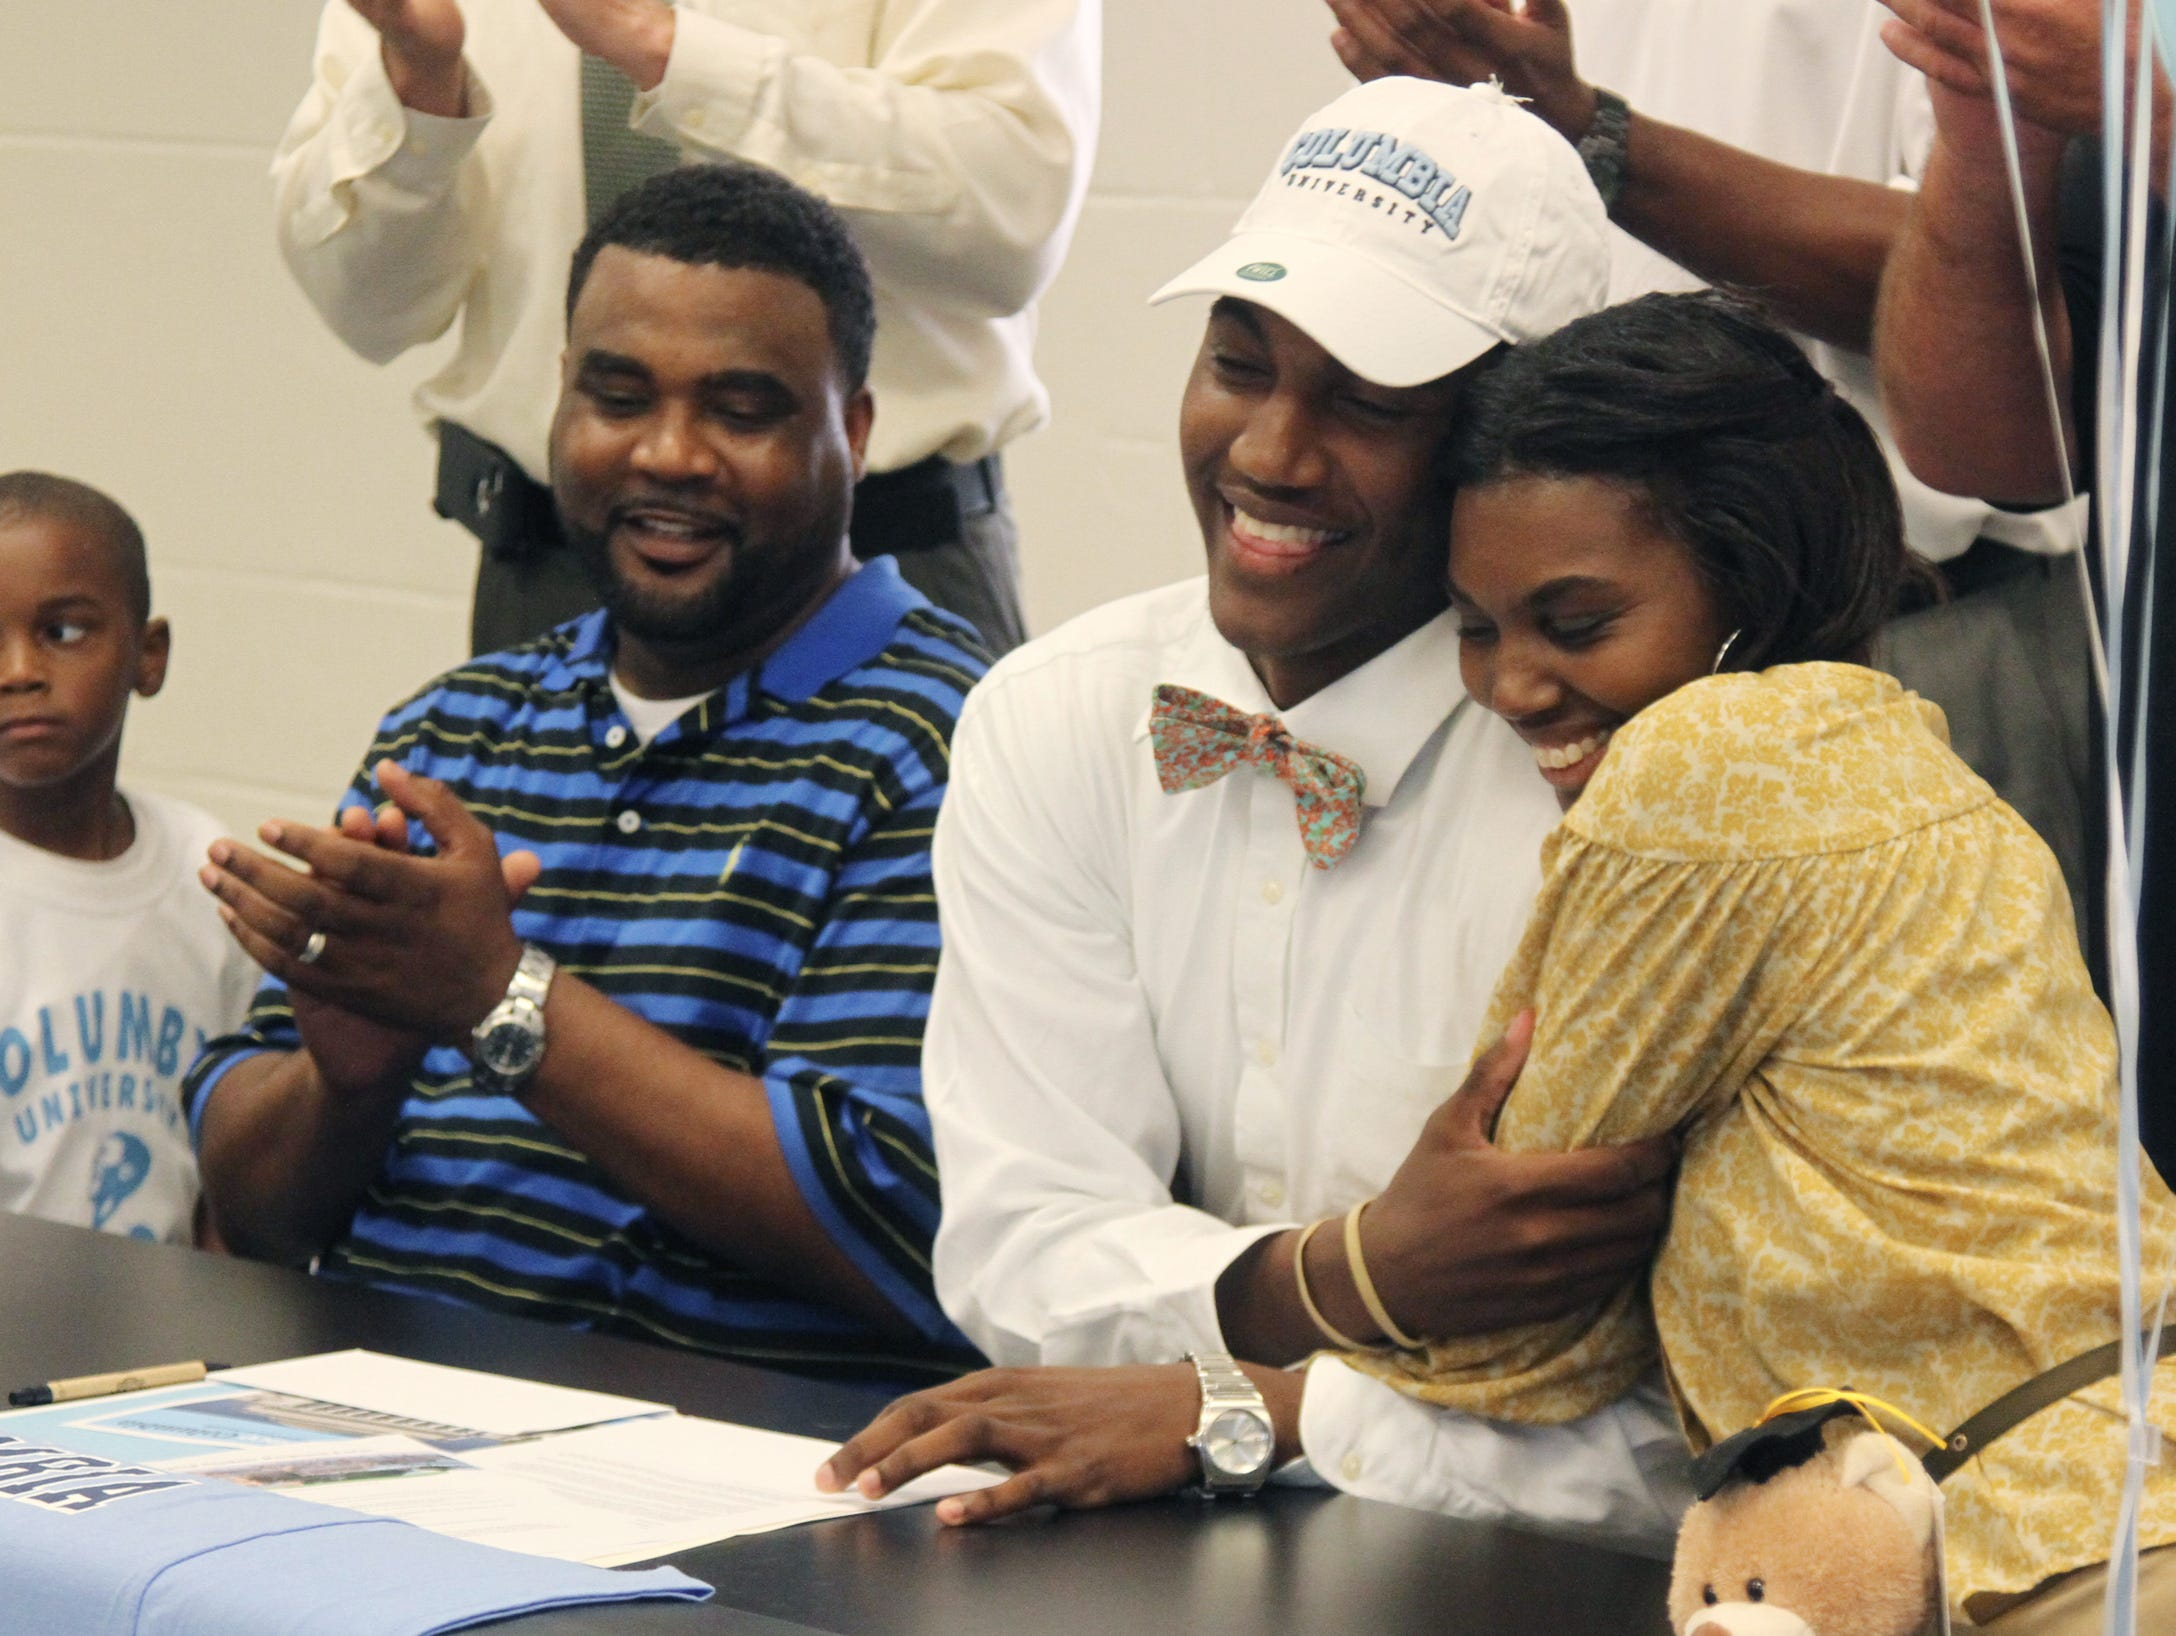 Mariner senior Rodney Hunter, who signed his NLI to Columbia on Wednesday, hugged his mother, Joy.